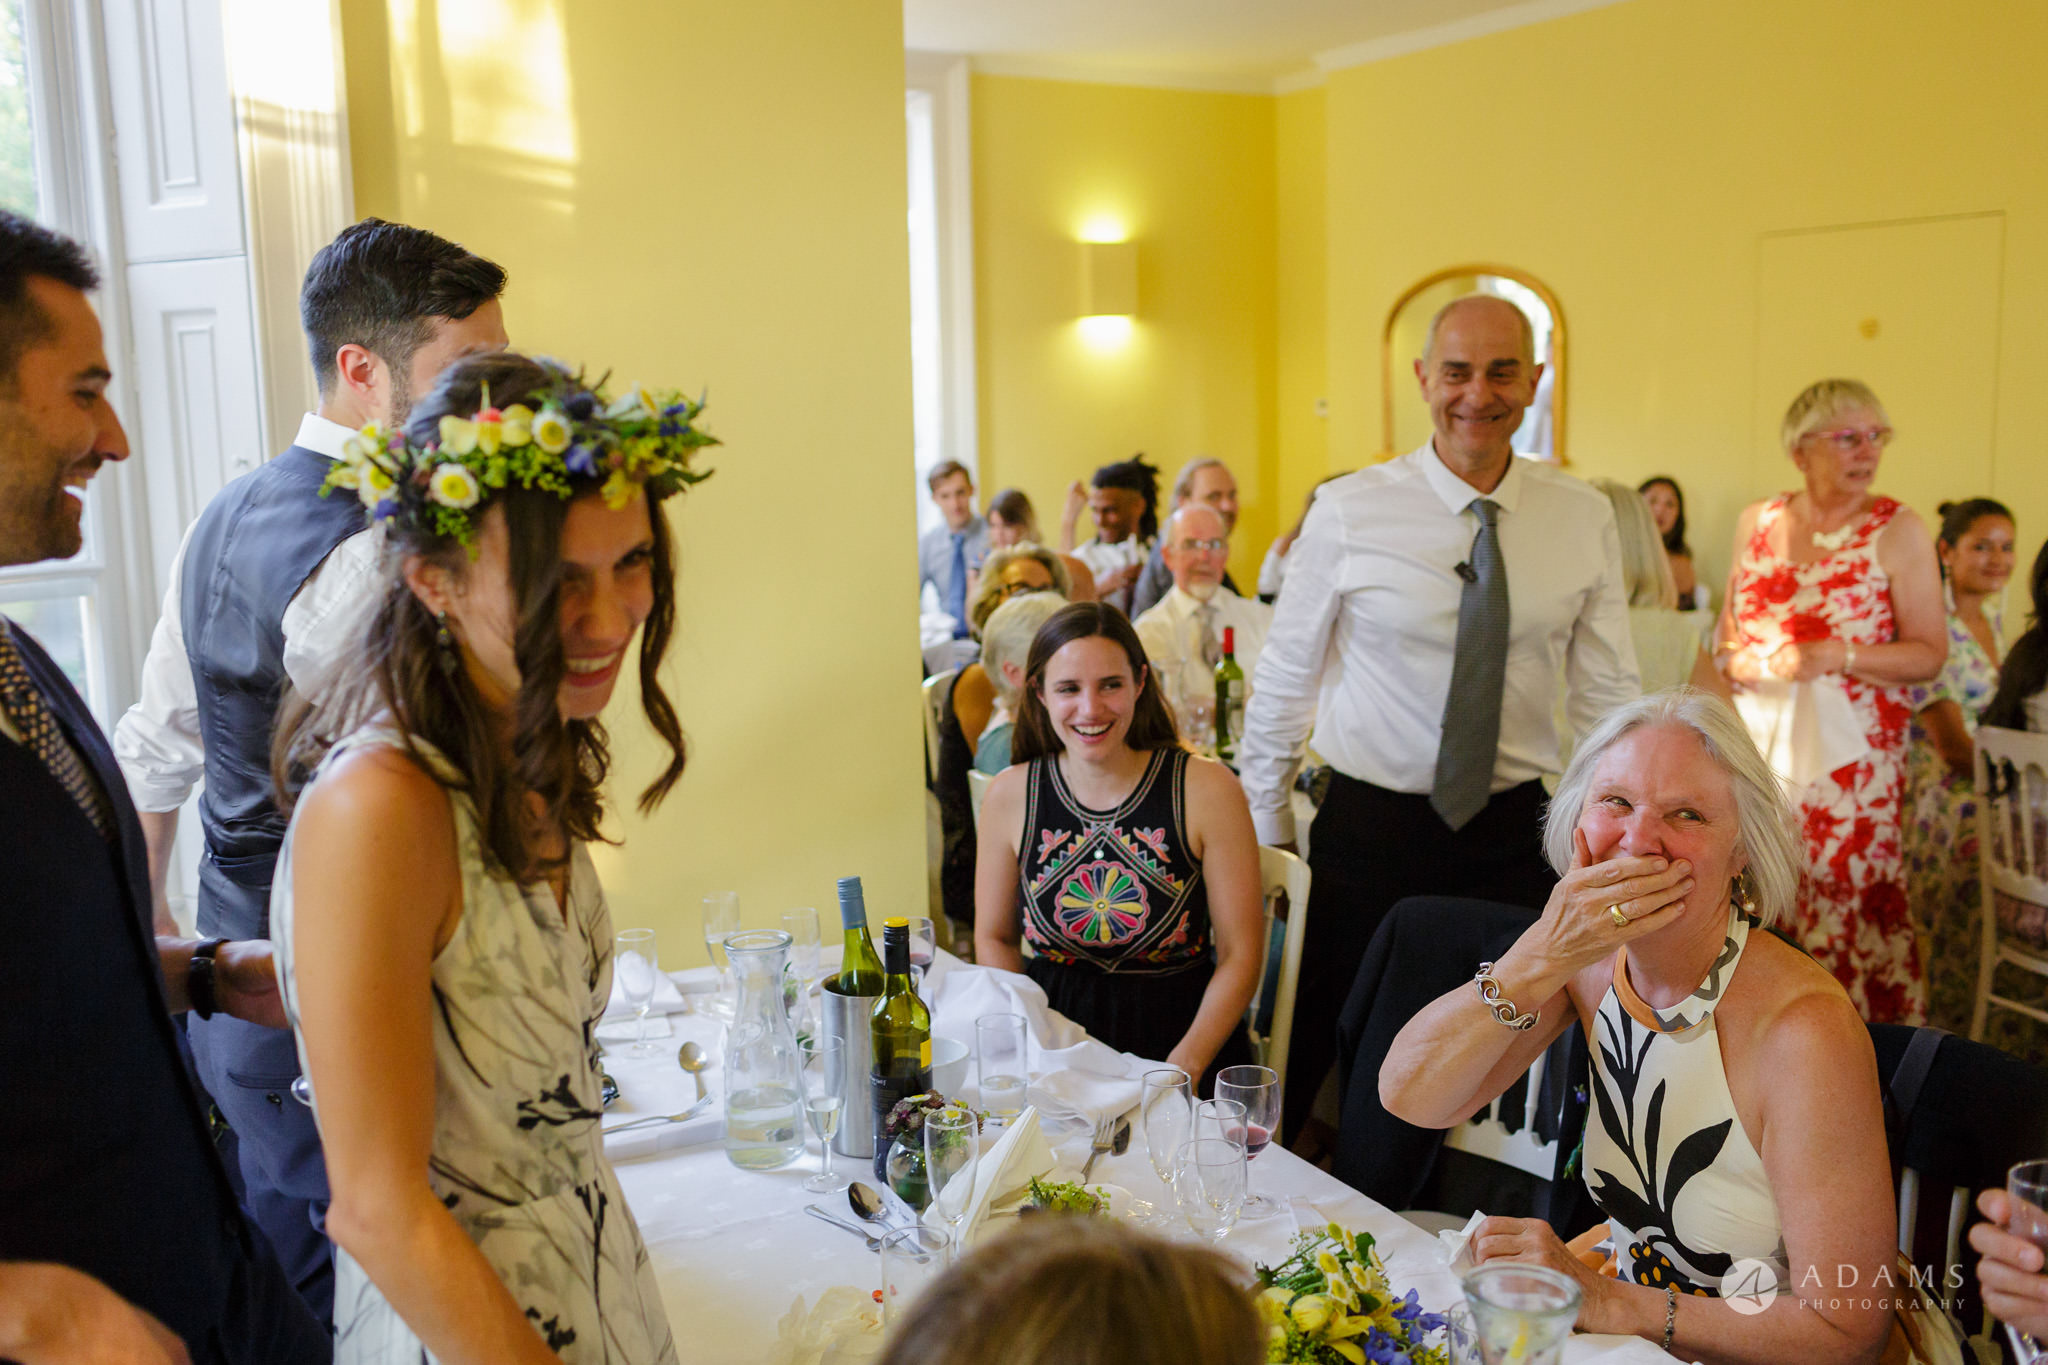 Clissold house wedding mother is laughing